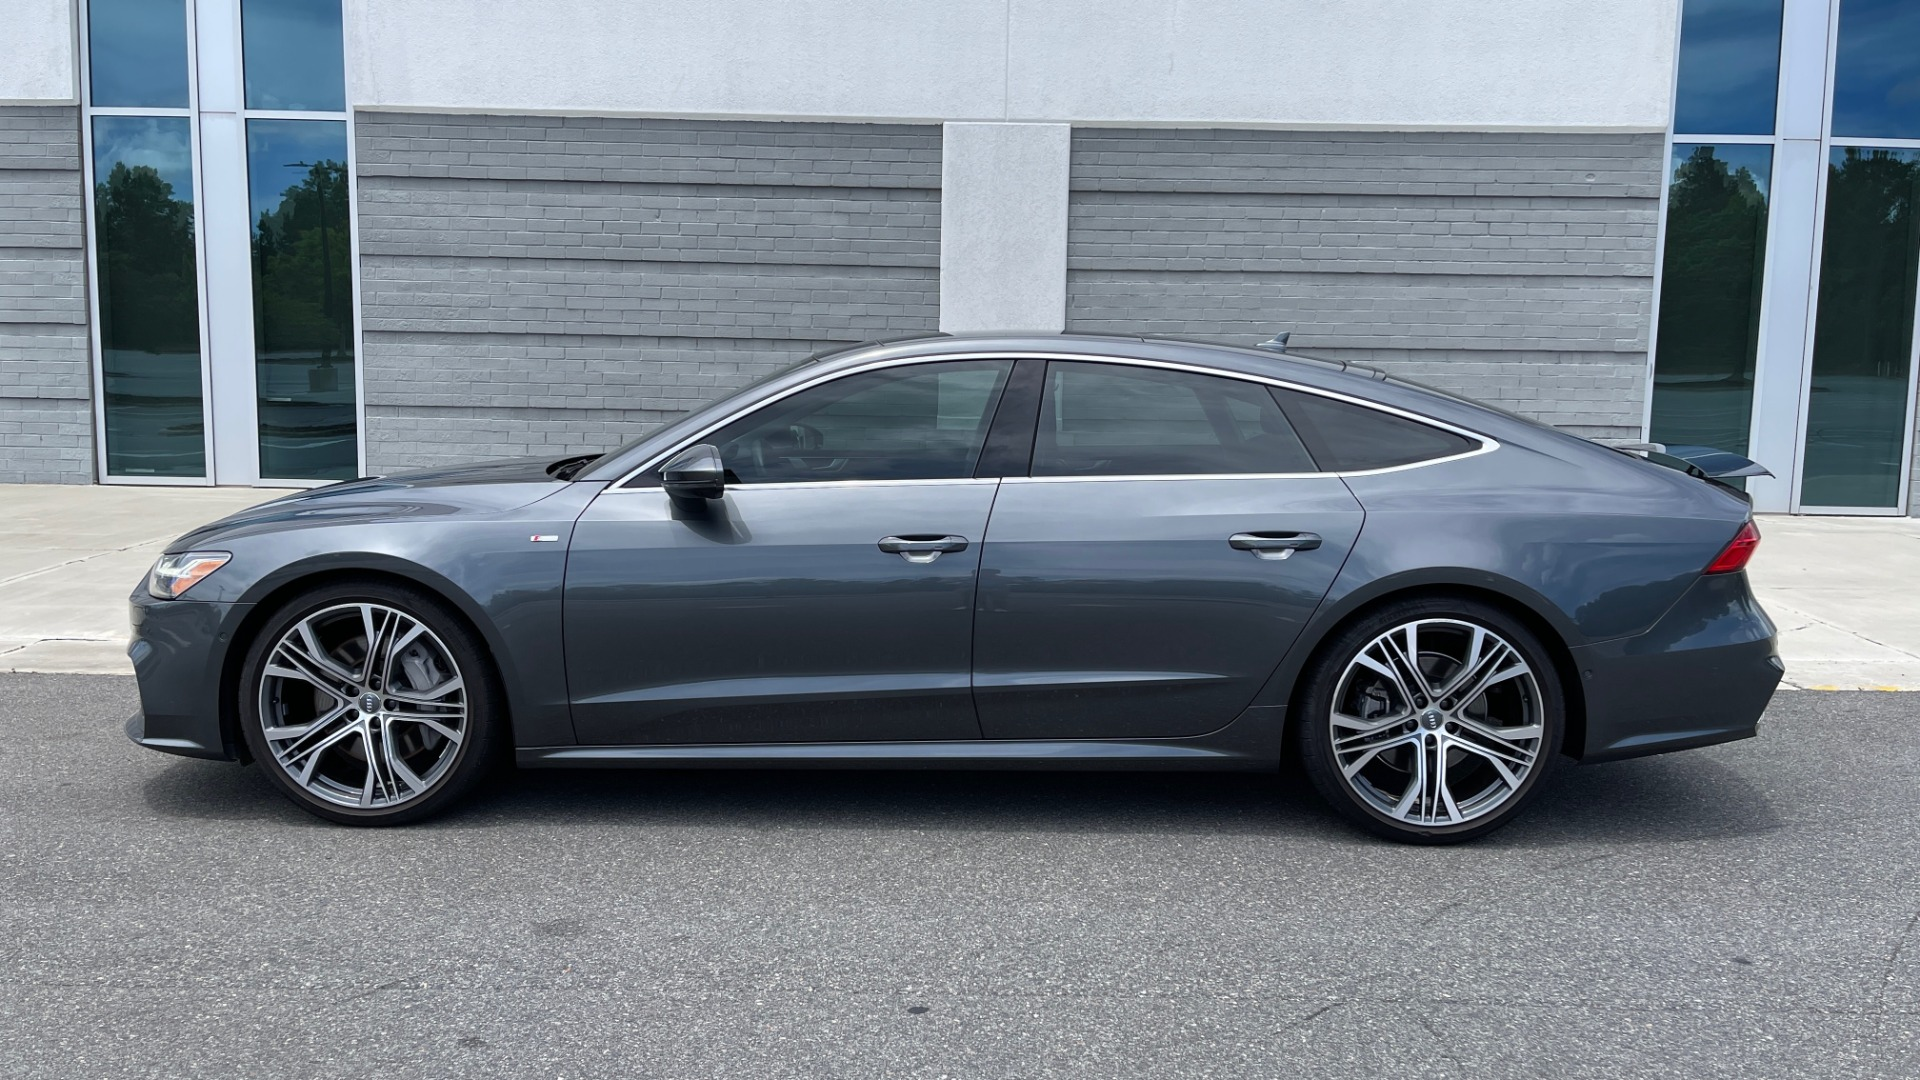 Used 2019 Audi A7 PRESTIGE 55 TFSI 3.0T / NAV / B&O SND / SUNROOF / S-LINE / 21IN WHLS / REAR for sale $66,995 at Formula Imports in Charlotte NC 28227 4